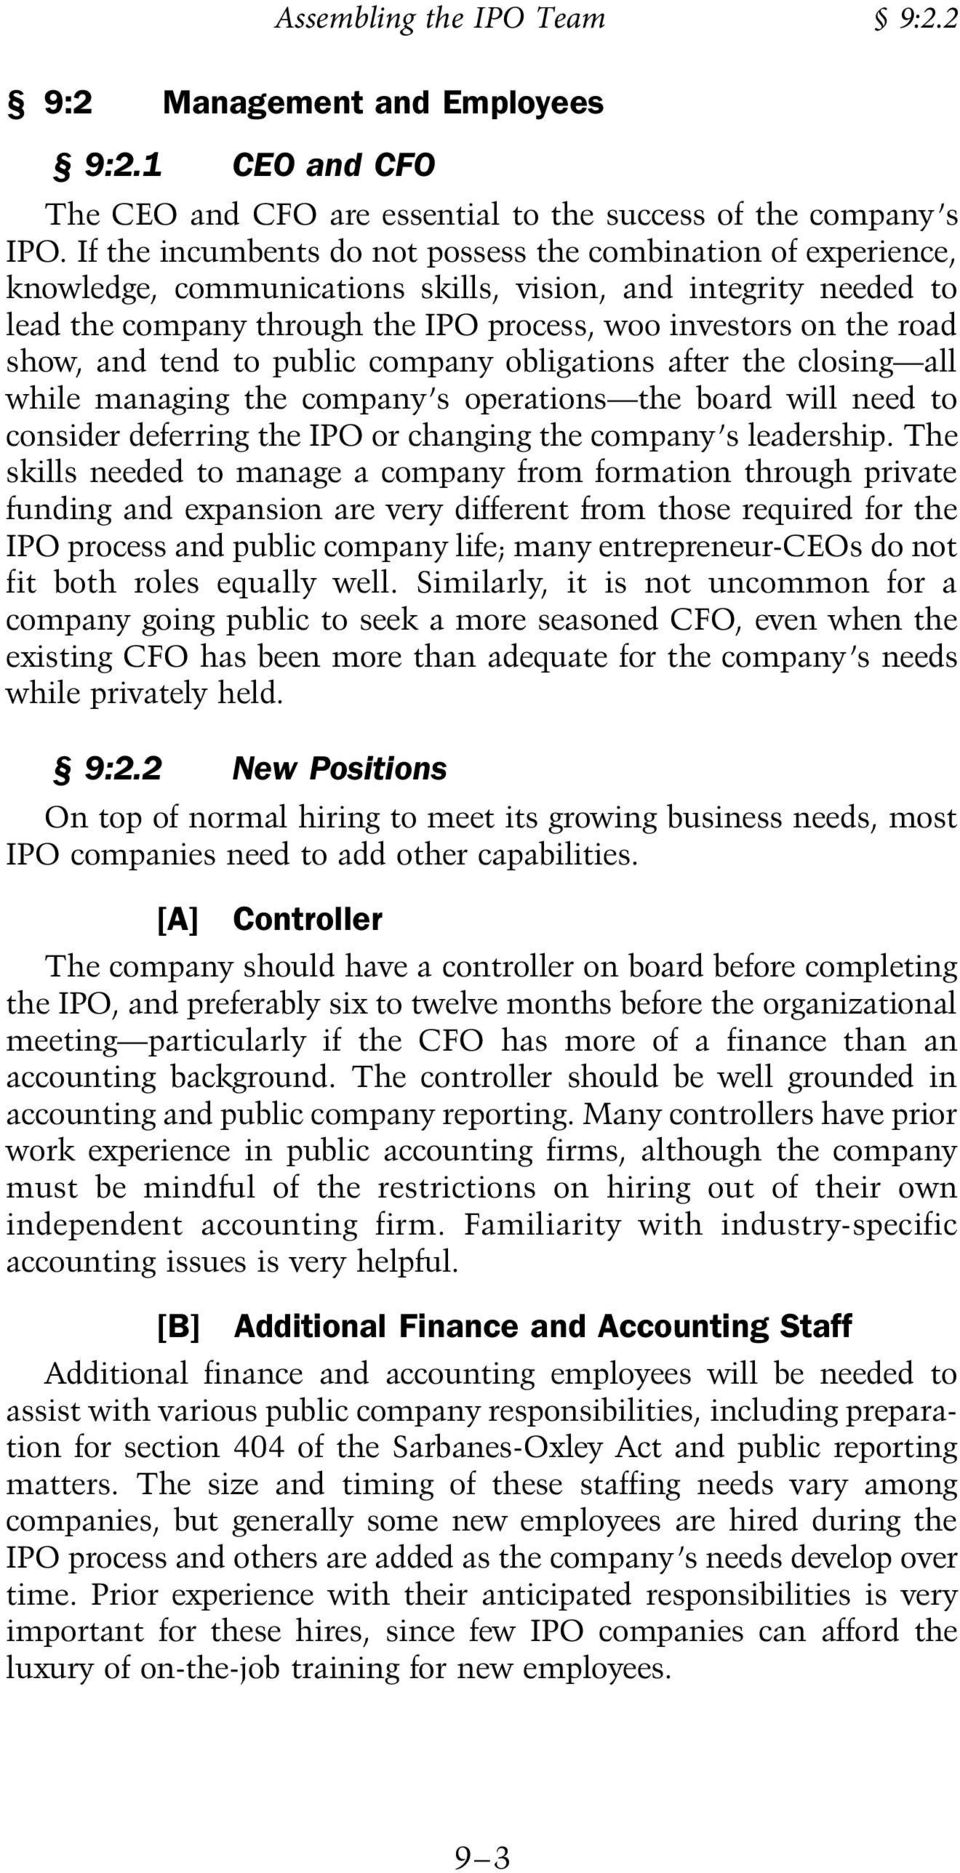 and tend to public company obligations afte the closing all while managing the company s opeations the boad will need to conside defeing the IPO o changing the company s leadeship.